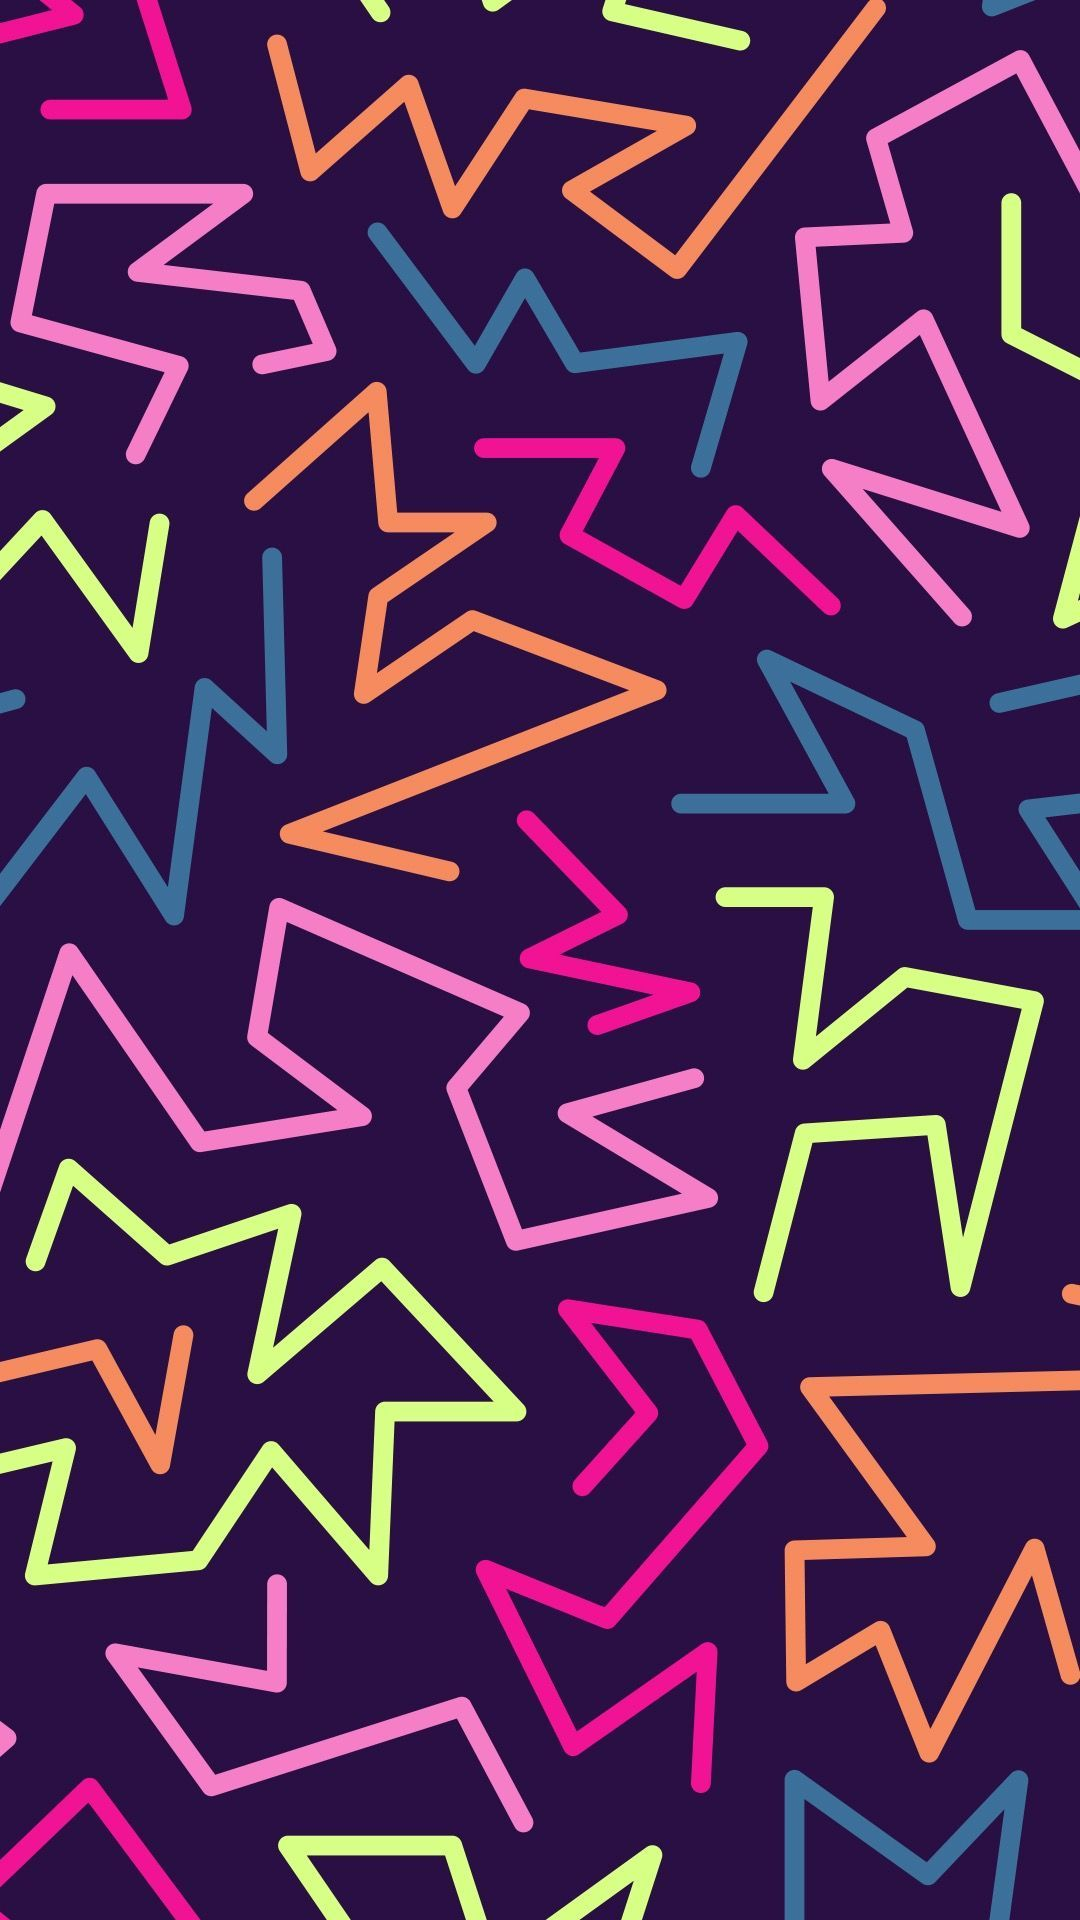 Colorful Pattern Wallpapaer Wallpaper Android Pattern Wallpaper Homescreen Wallpaper Cellphone Wallpaper